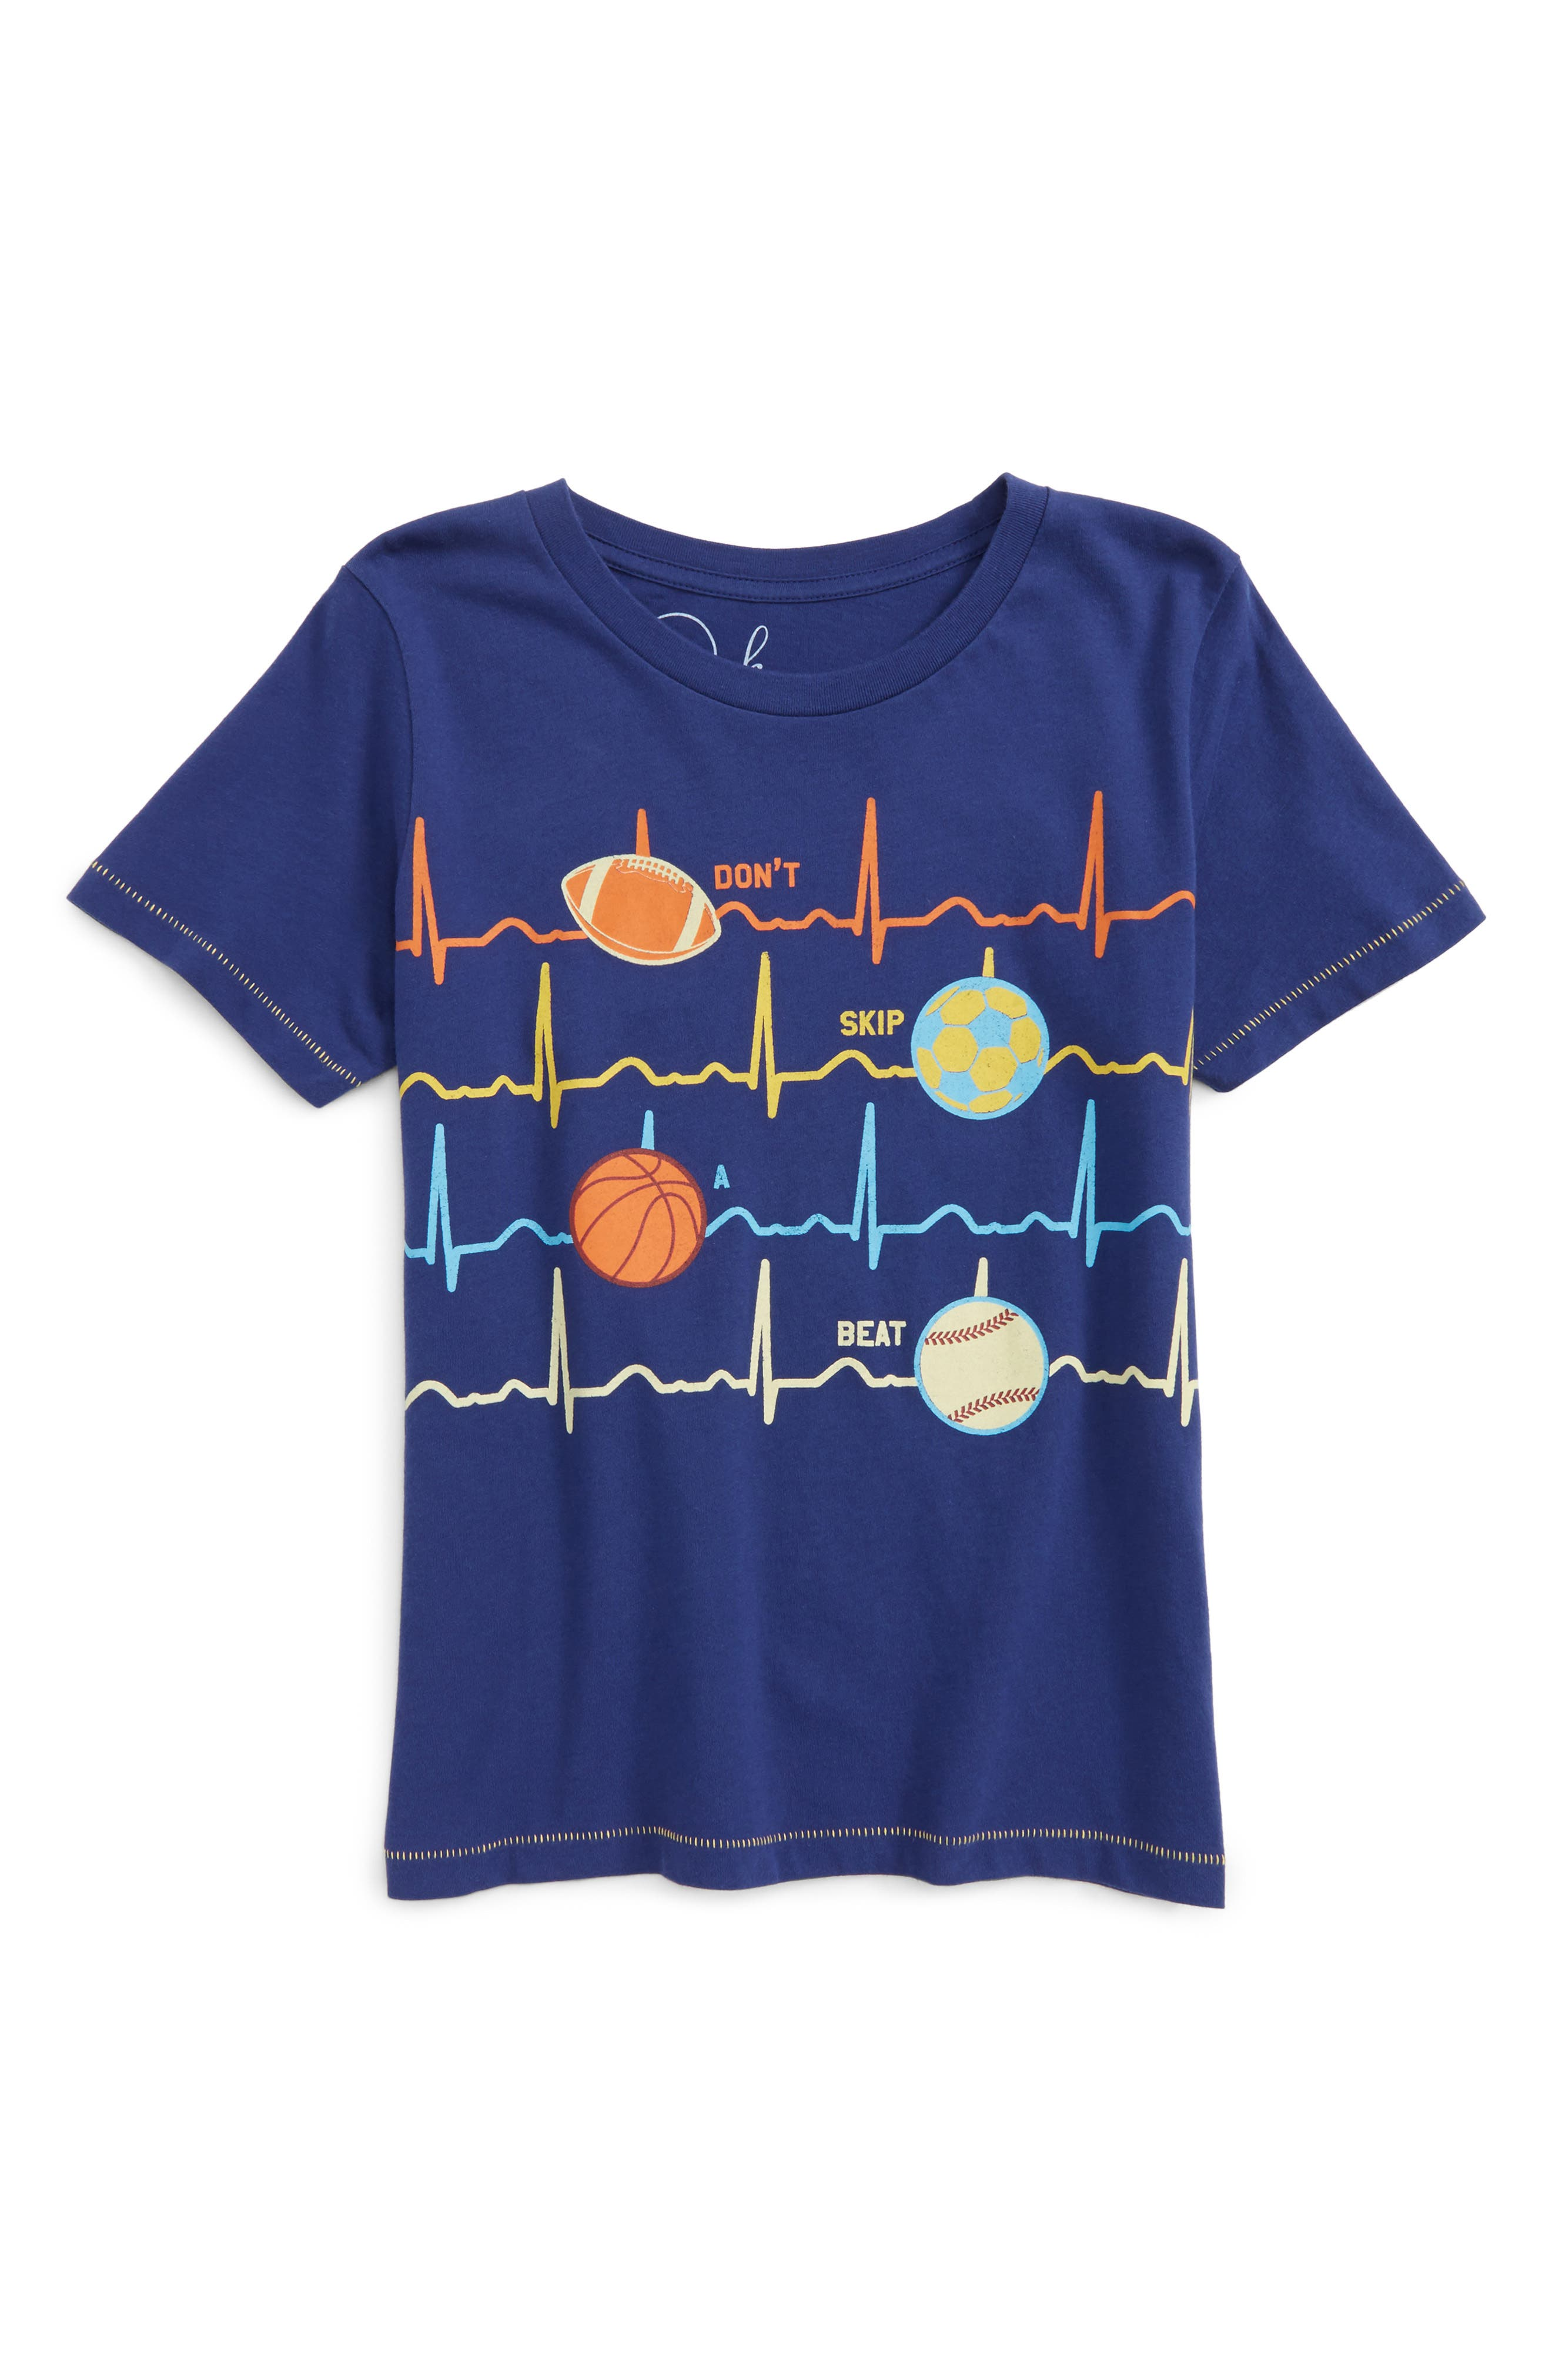 Heartbeat T-Shirt,                             Main thumbnail 1, color,                             410